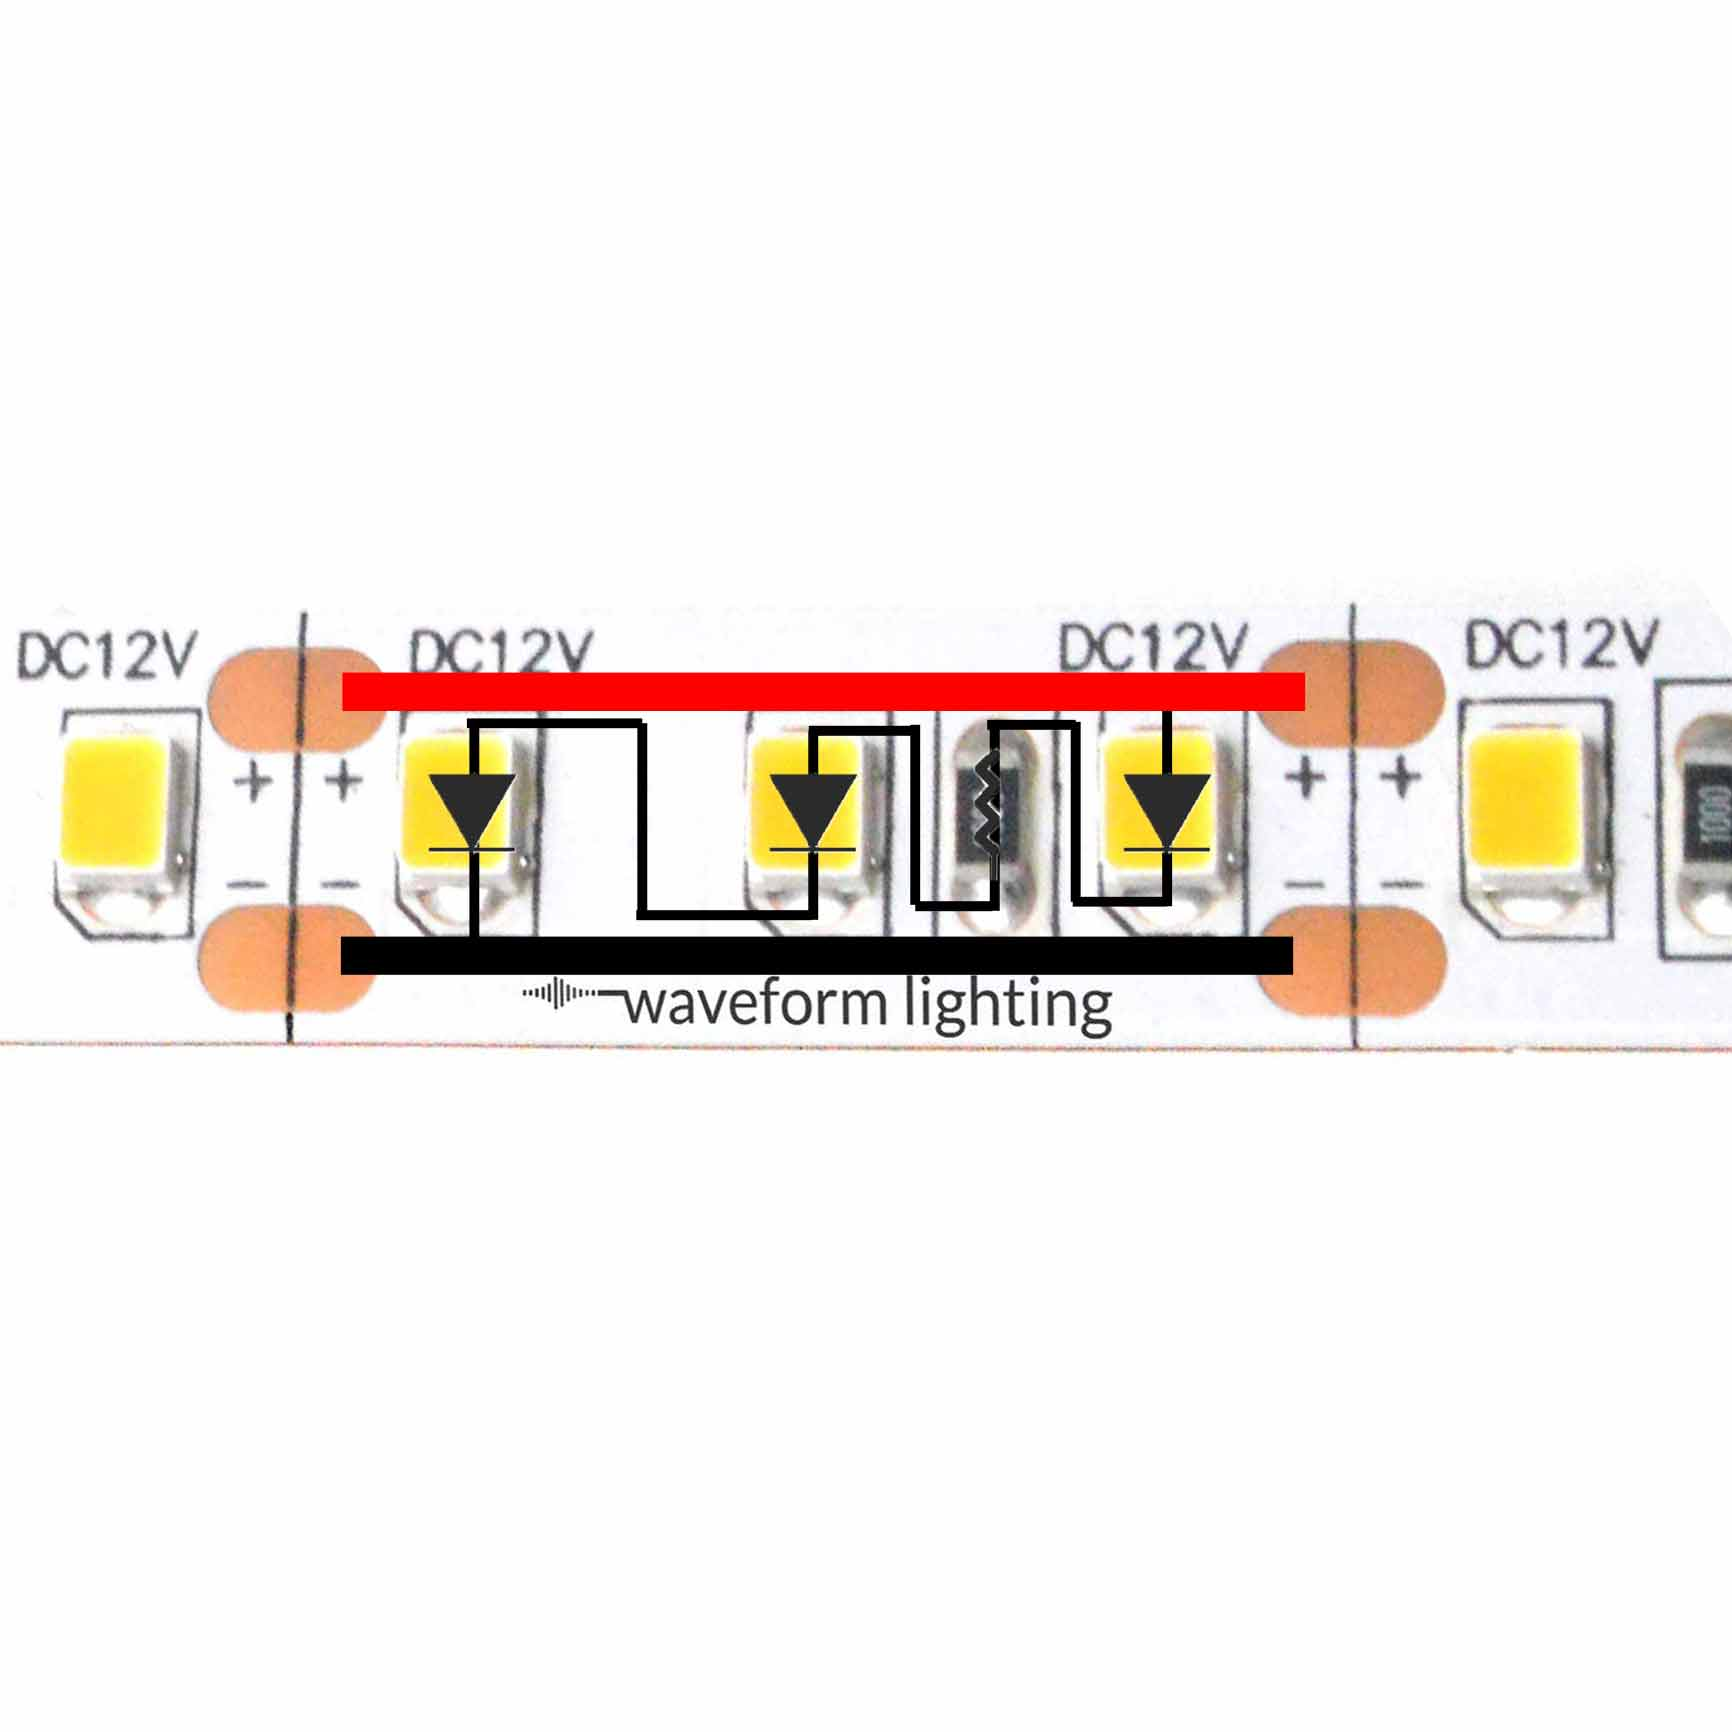 Led Strip Light Internal Schematic And Voltage Information If A Is Used Instead Of Bulb The Connections Will Require Bit What Happens To Leds In Parallel Remains Same But Current Split Equally Among Each Circuits Therefore You Have